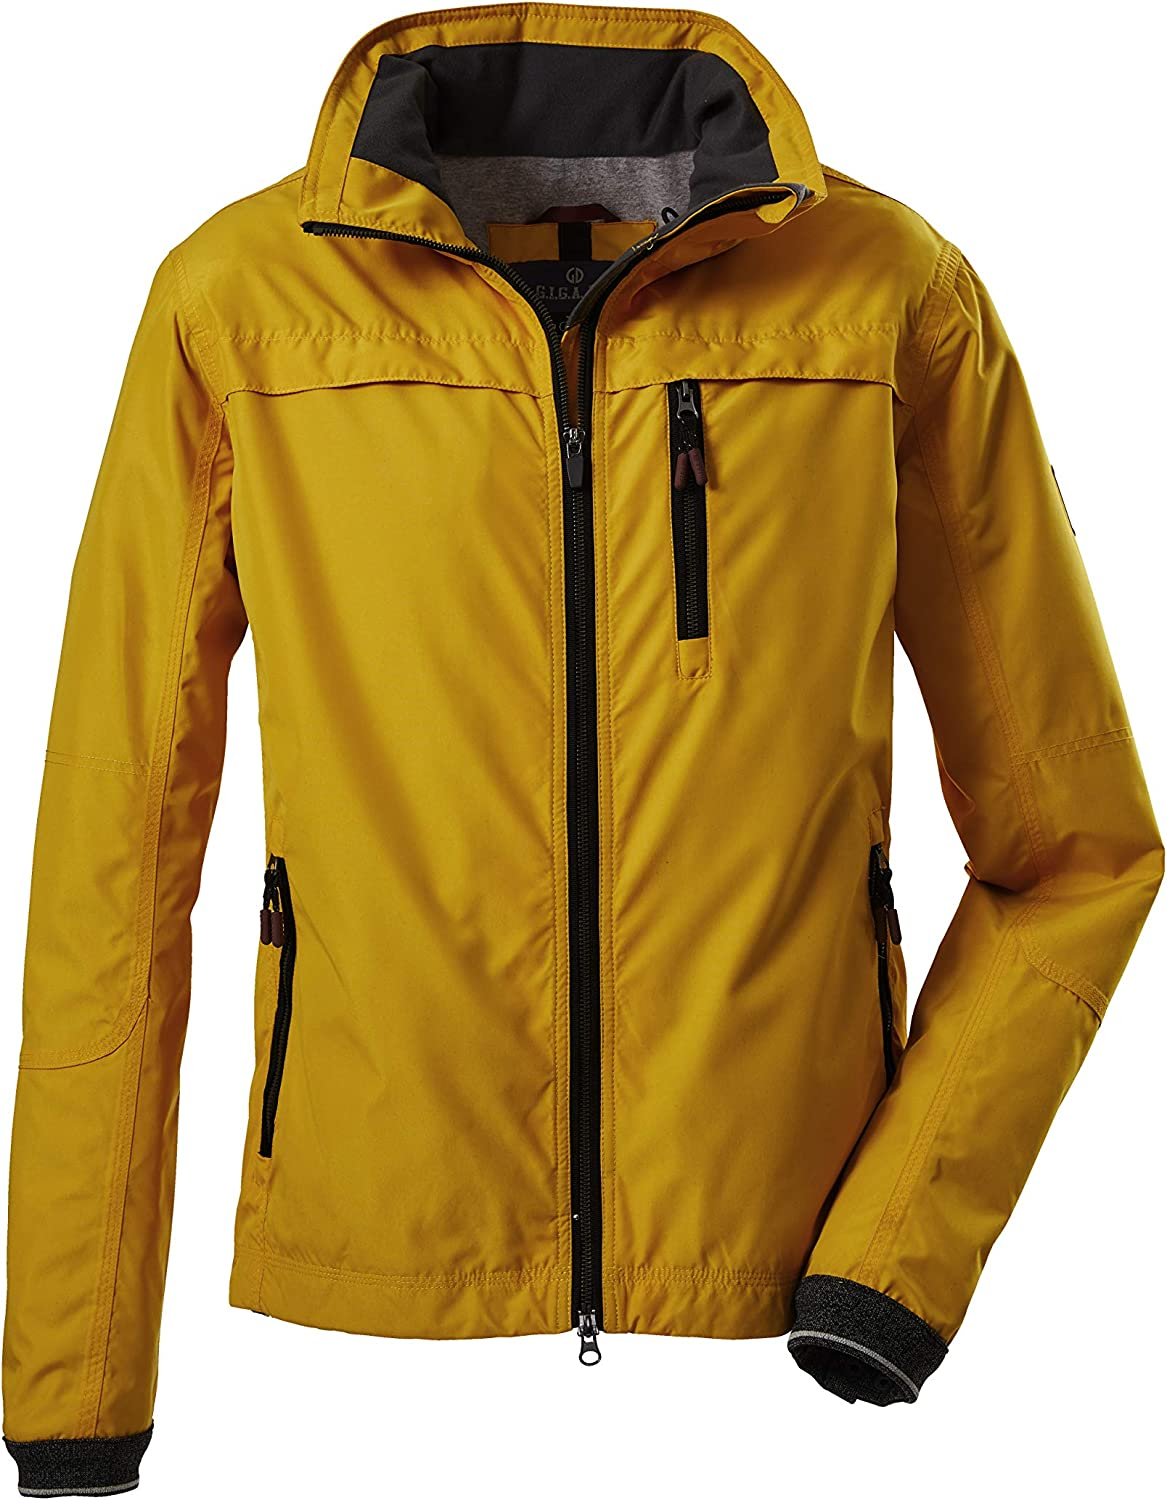 G.I.G.A. DX Men Jacket Functional Yorko All items free shipping Sales results No. 1